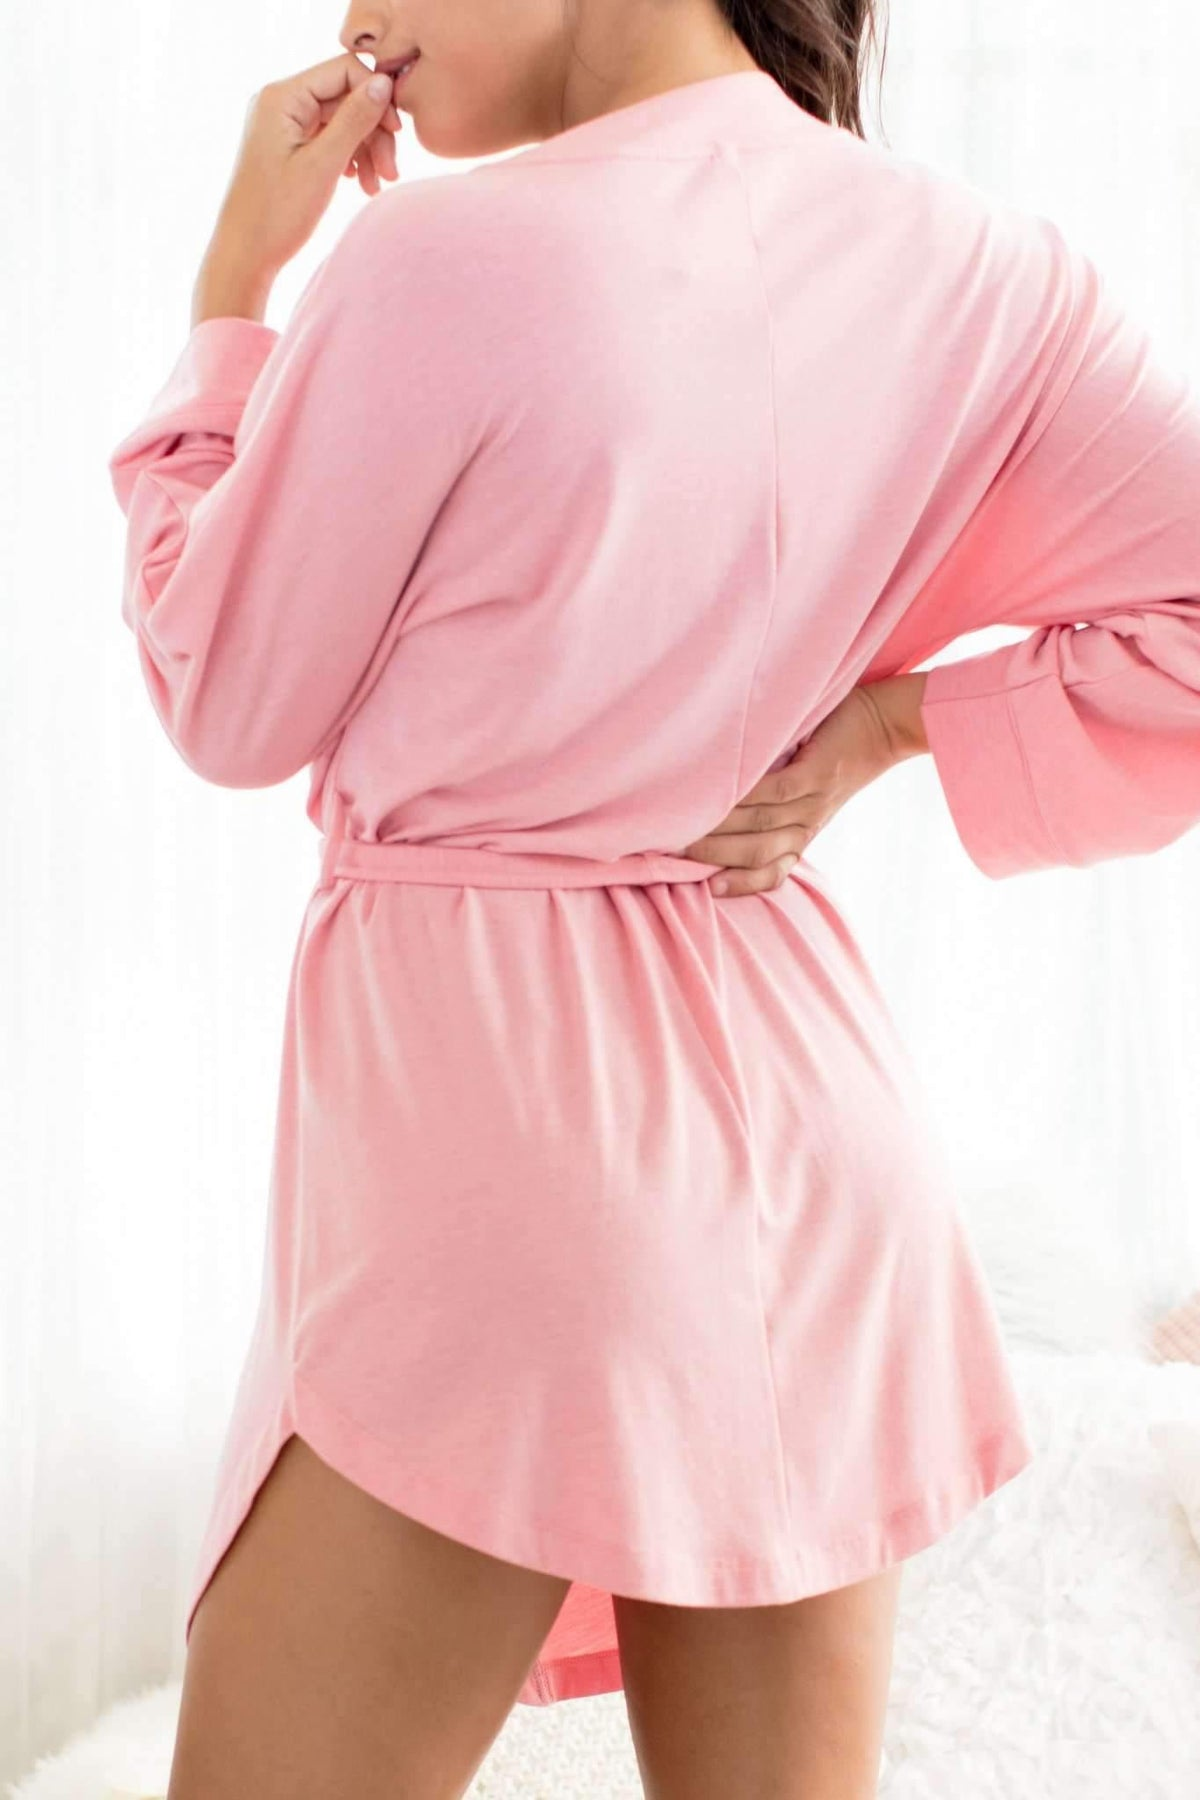 Honeydew Intimates:All American Rayon Robe